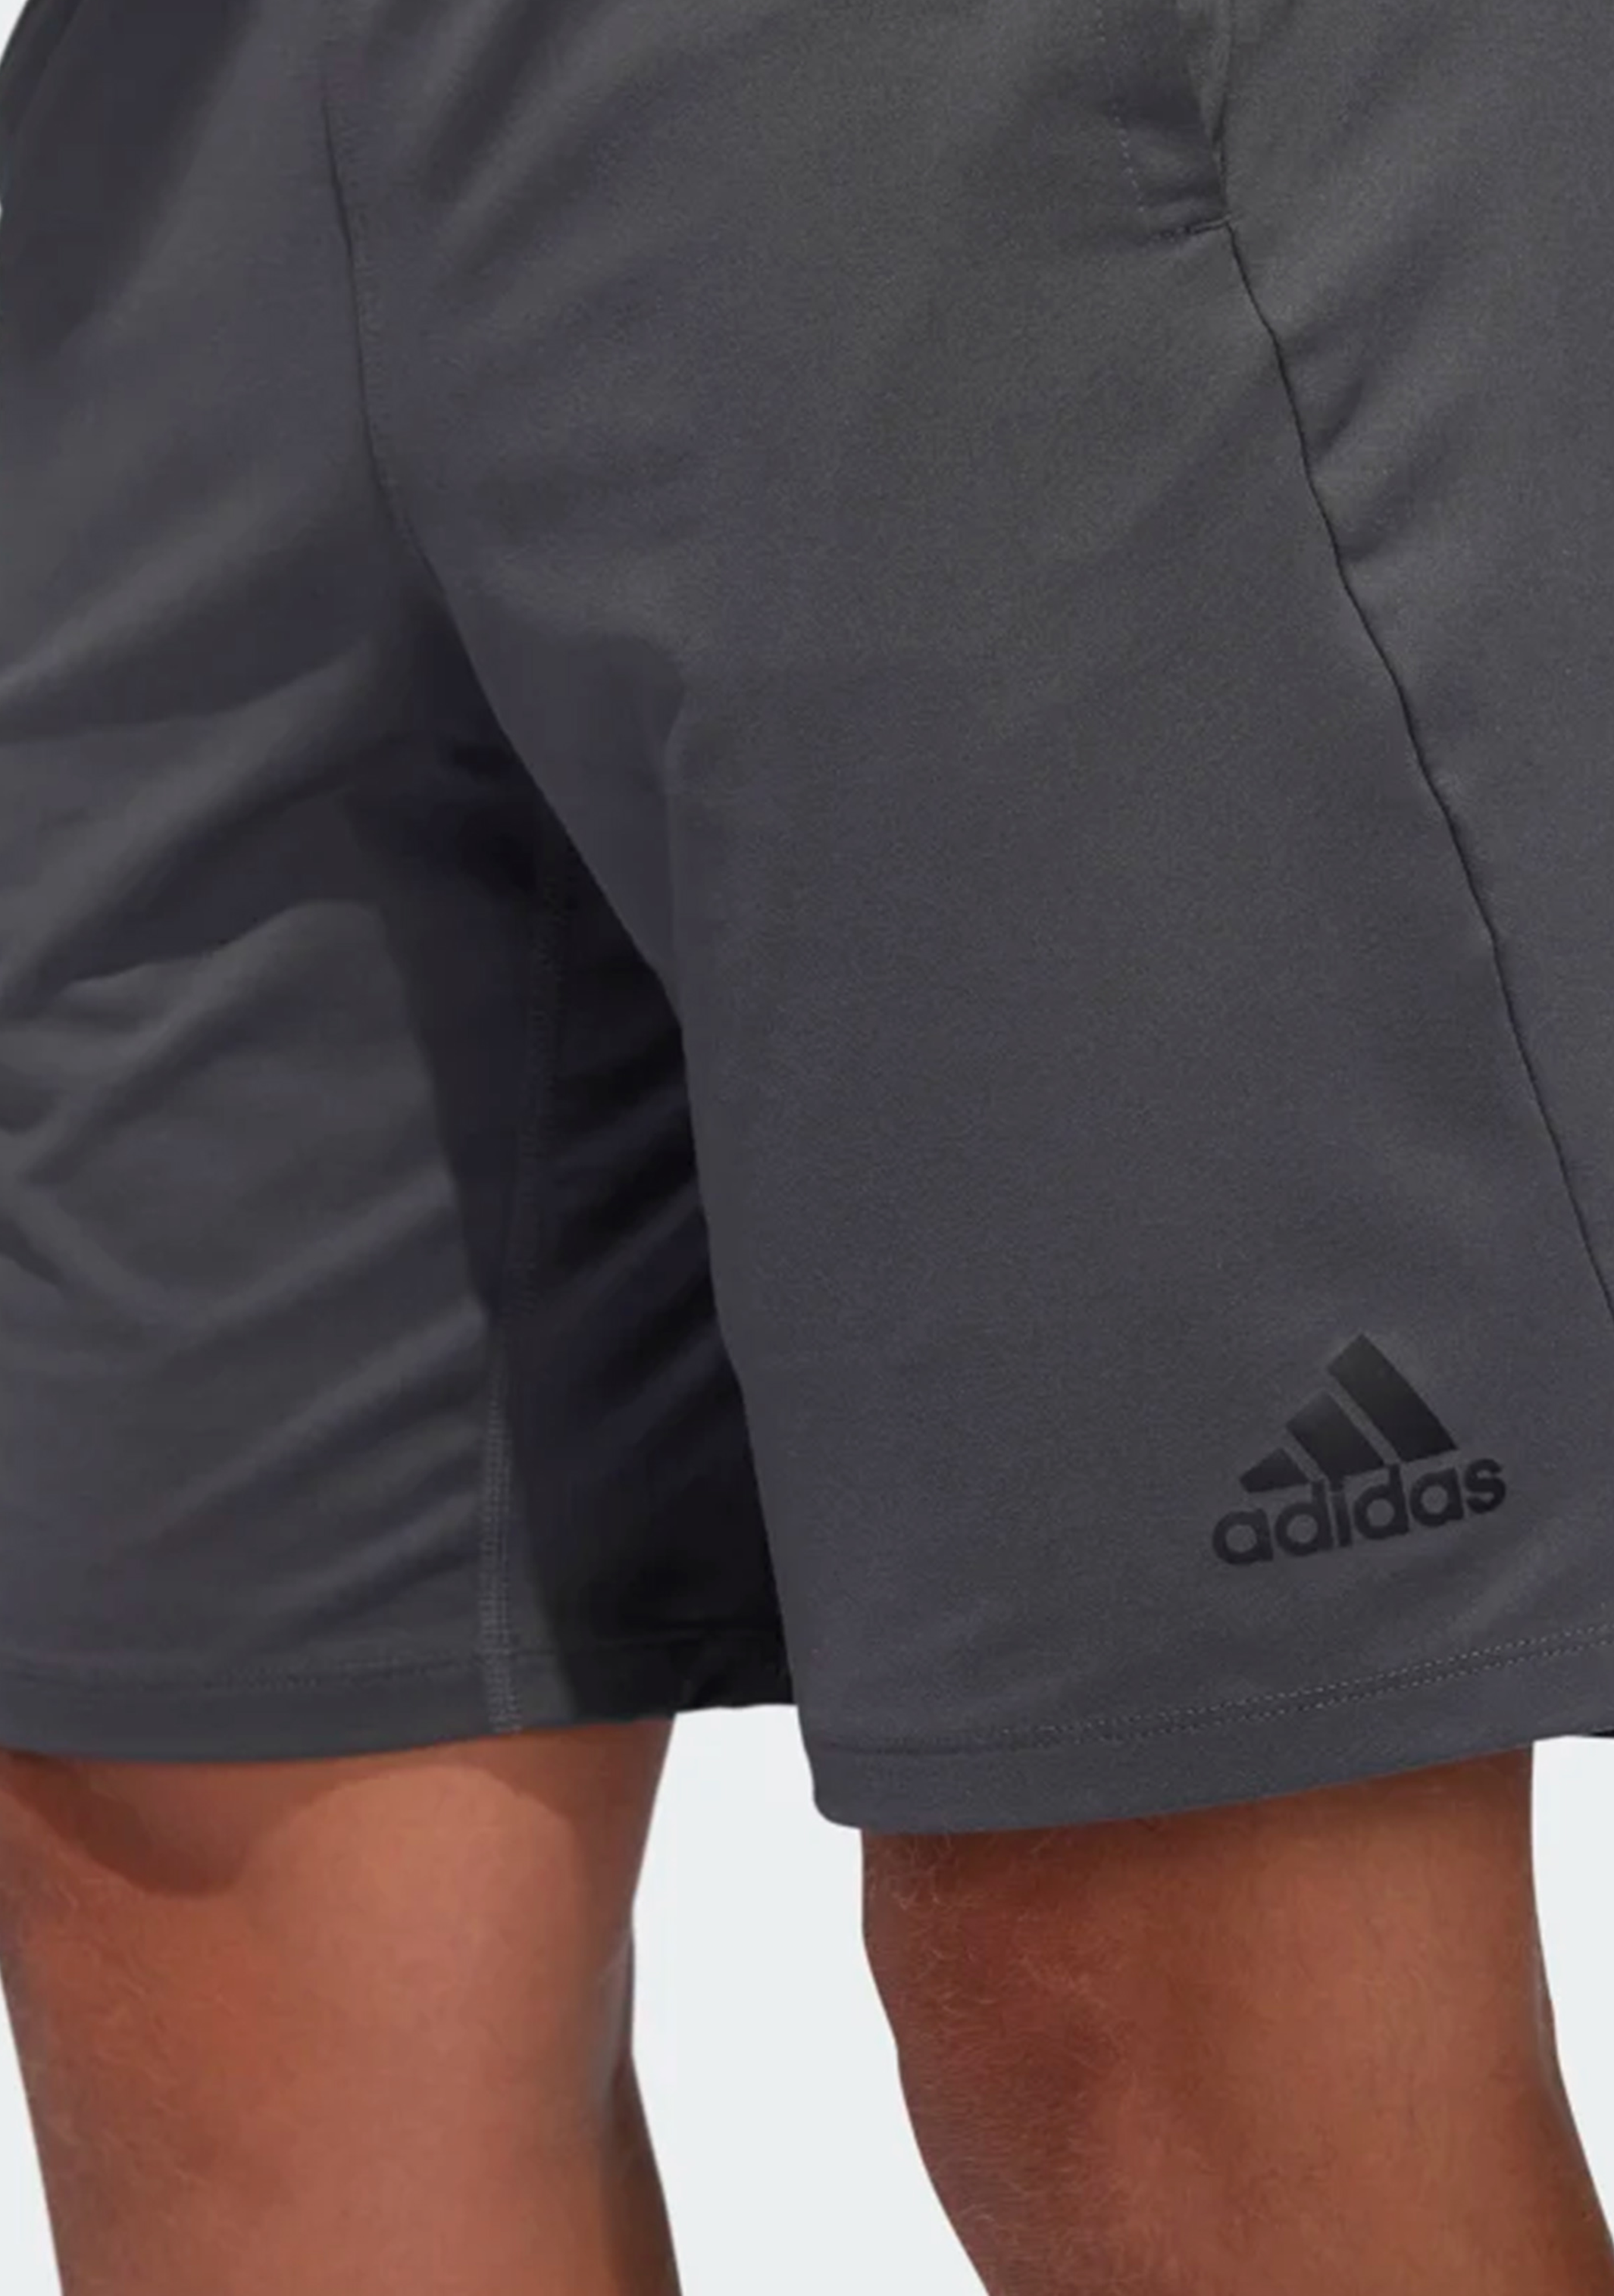 adidas shorts jim kidd